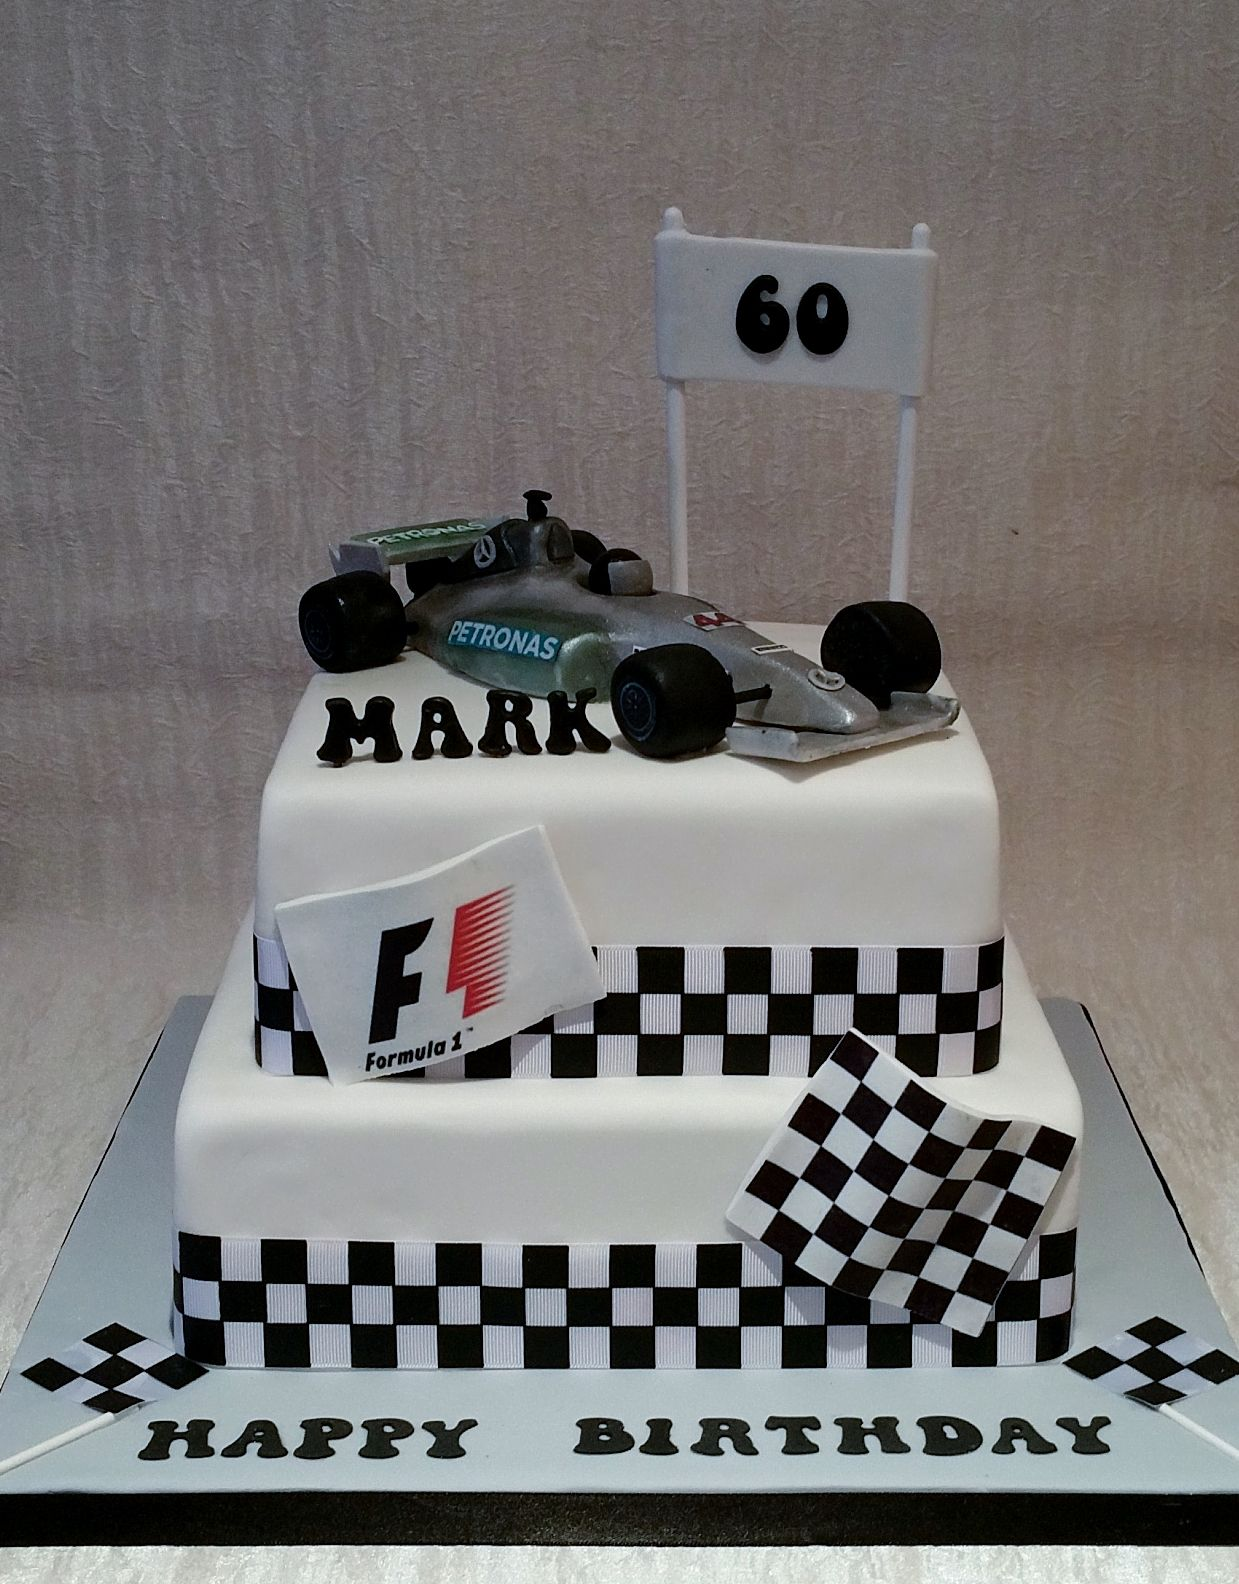 f1 car cake template - grand prix themed cake for 60th birthday edible handmade